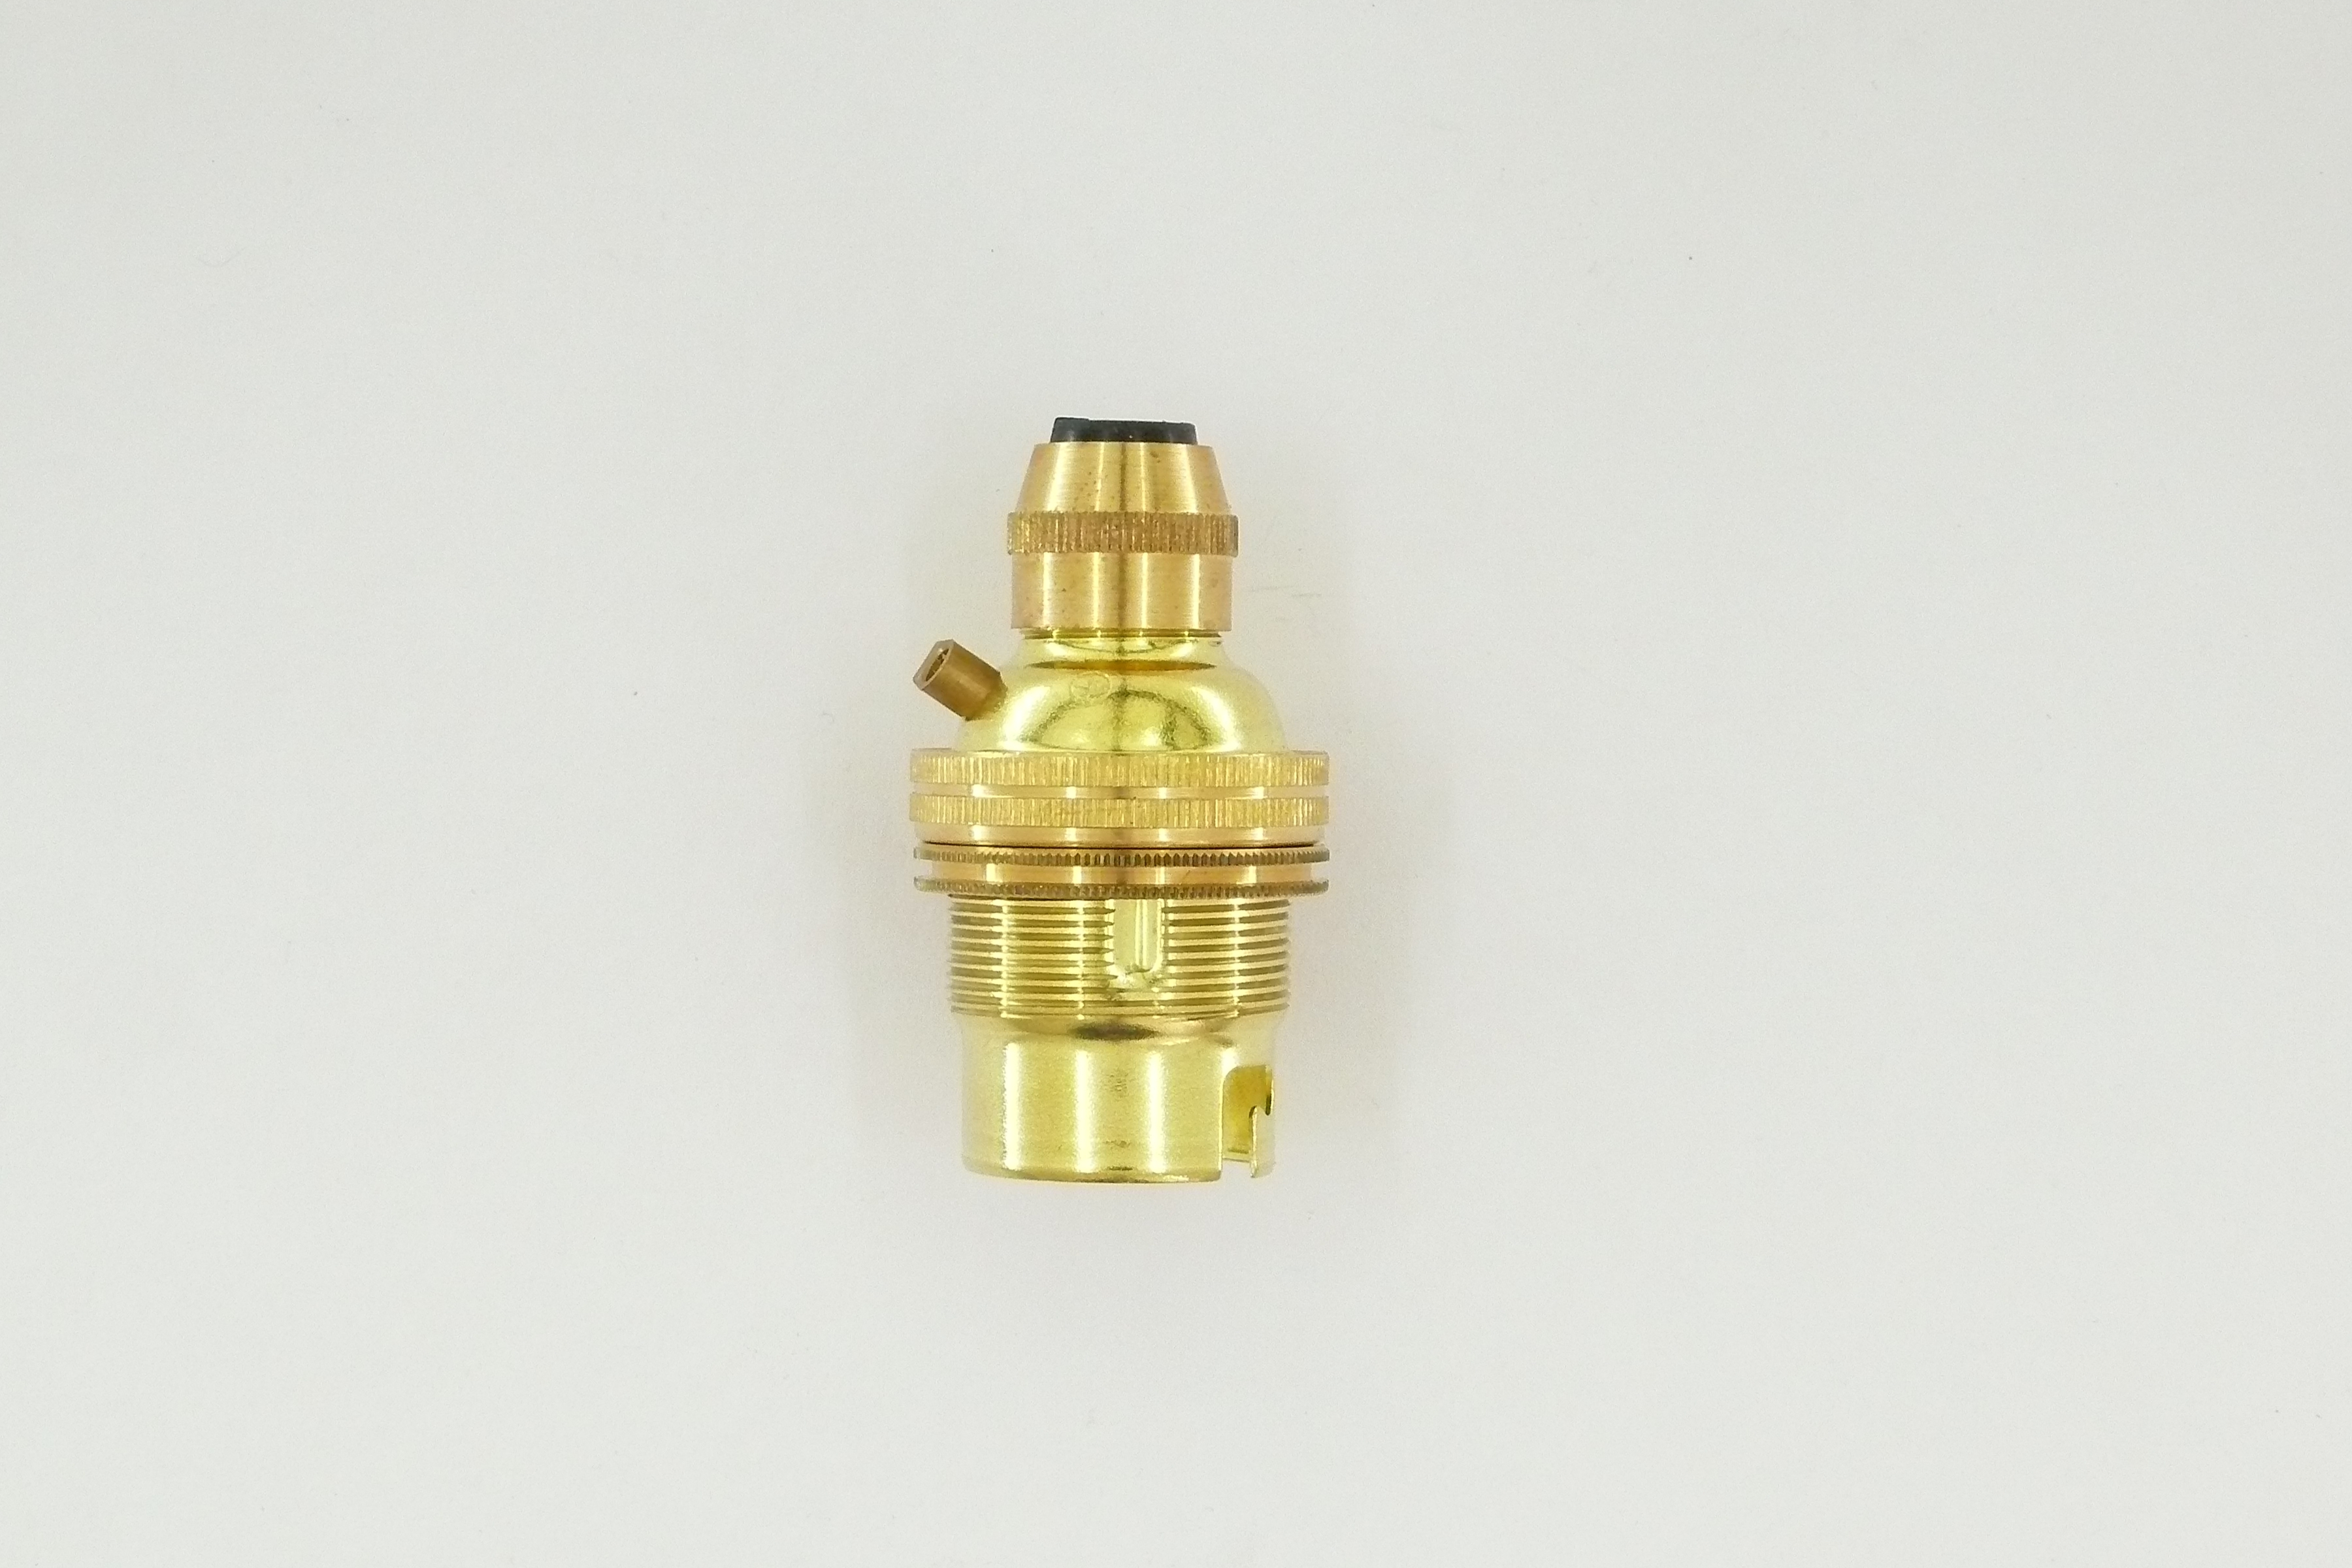 Brass bayonet lampholder cord grip suitable for pendant braided cable BC B22